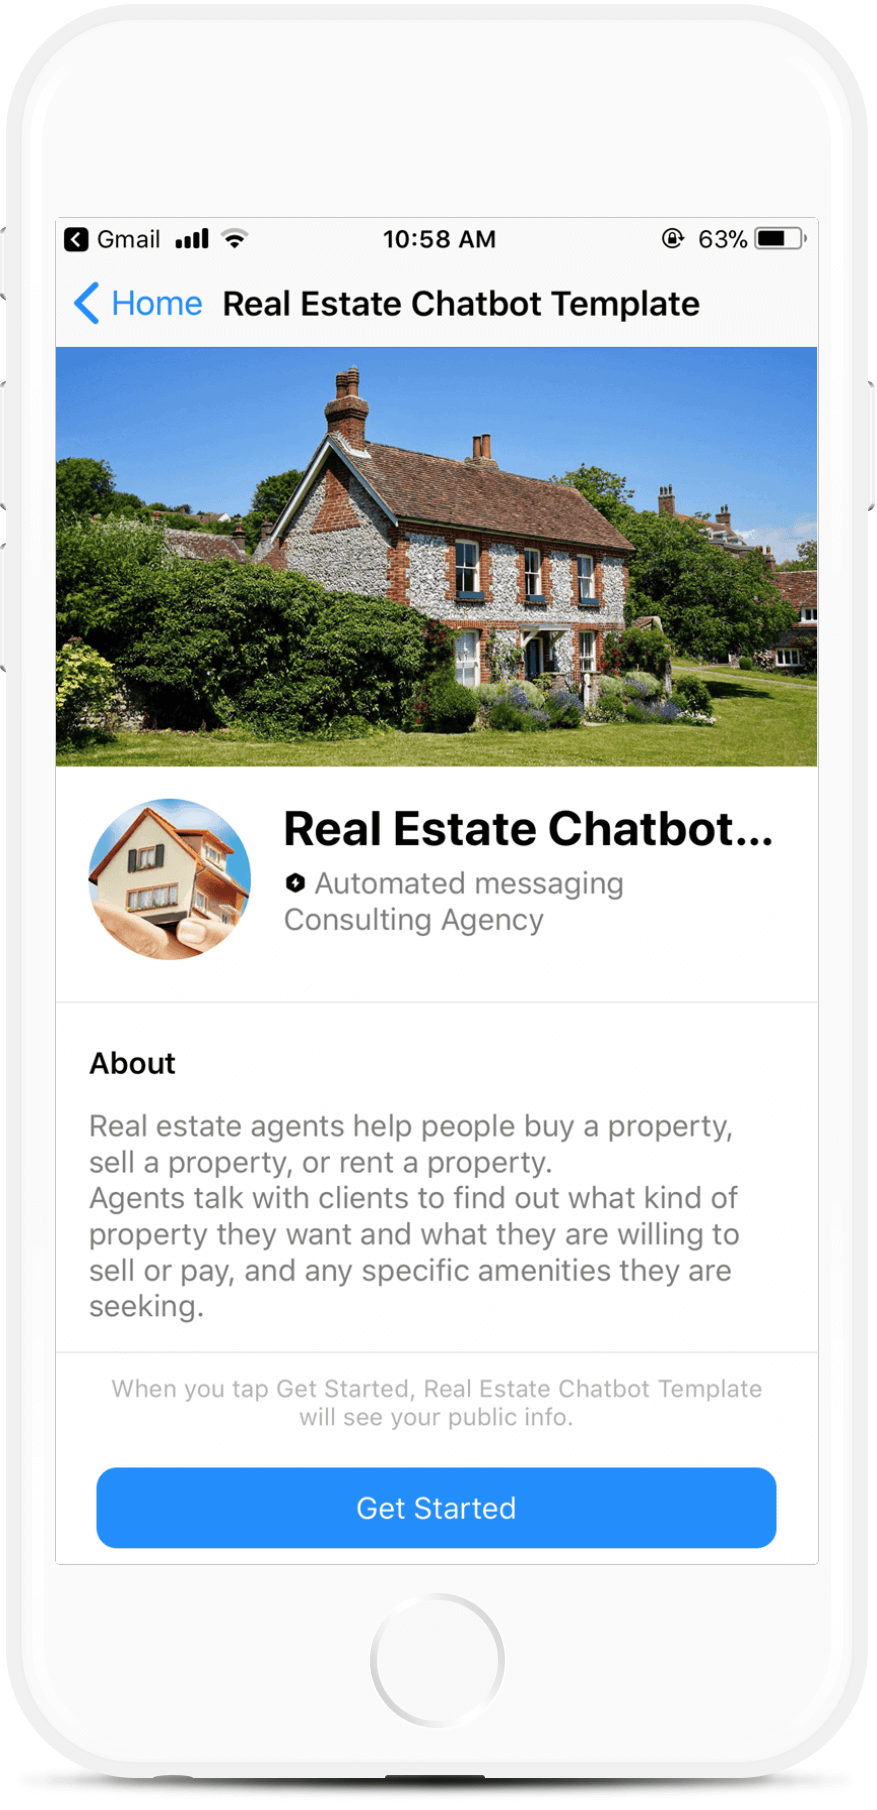 Lead Nurturing Messenger Bot for Realtors